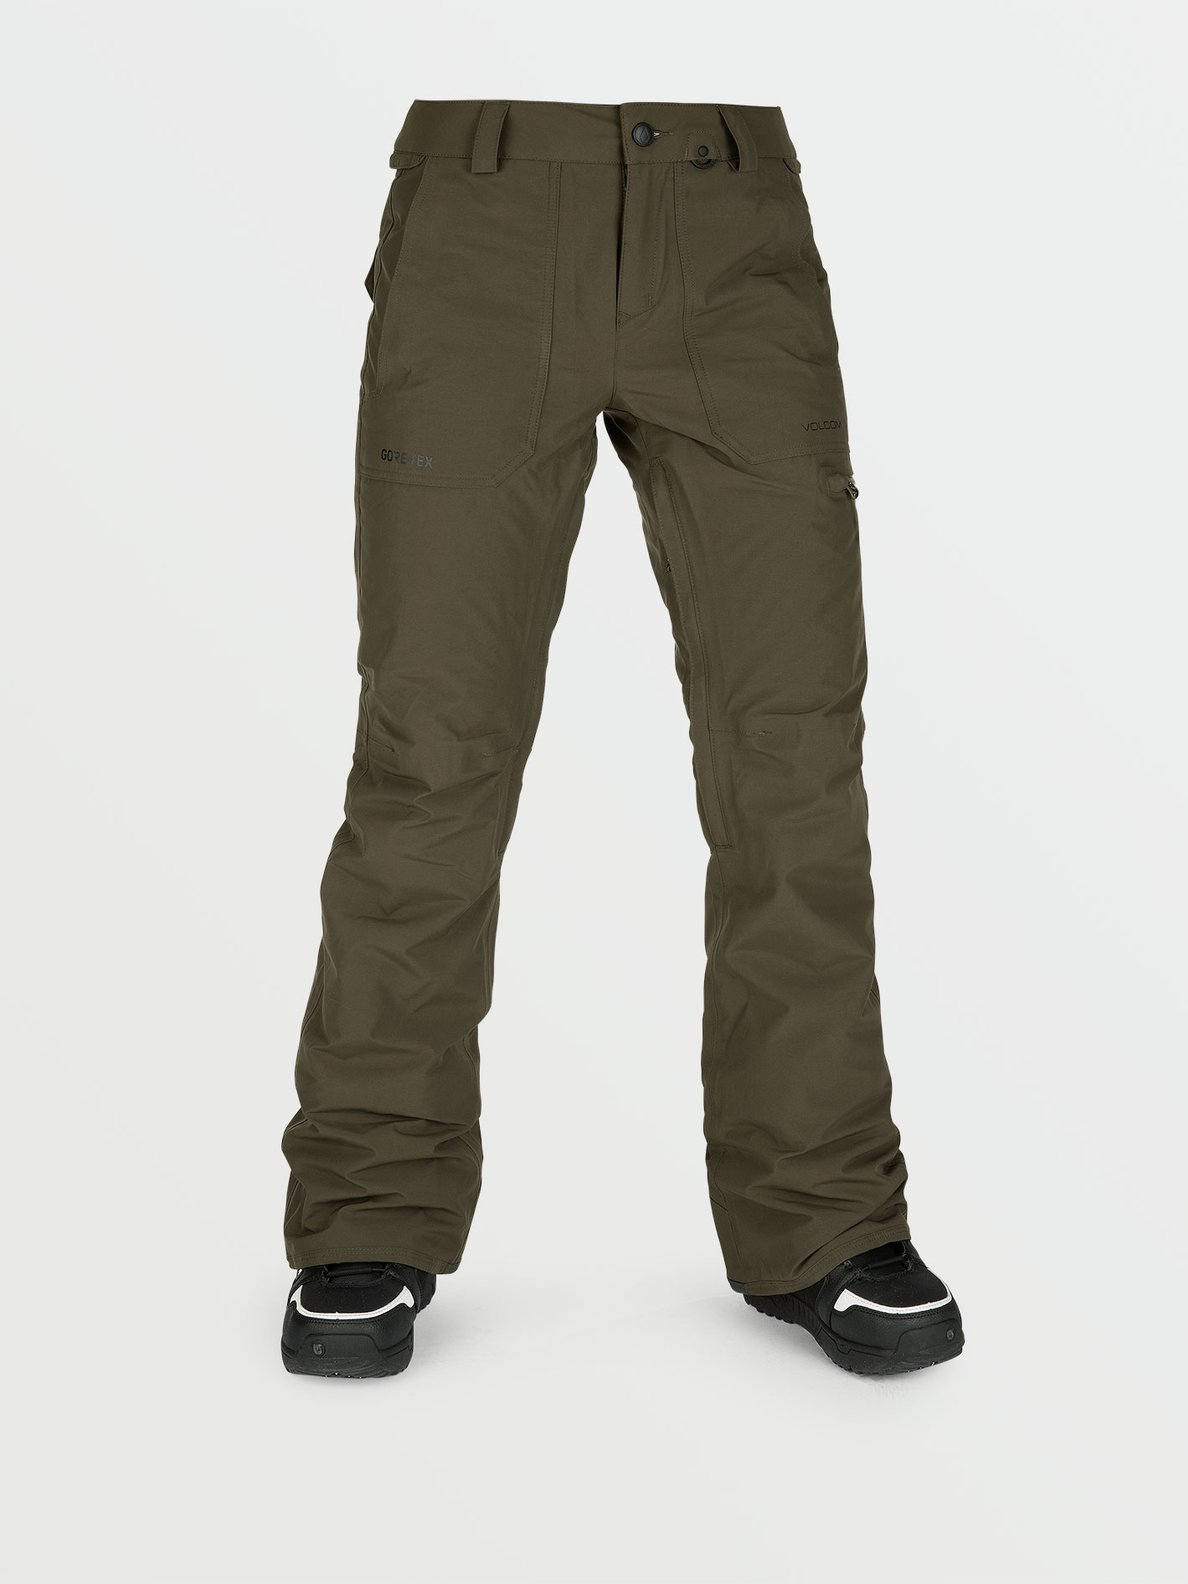 Volcom Knox Insulated Gore Pant (Multiple Color Options)